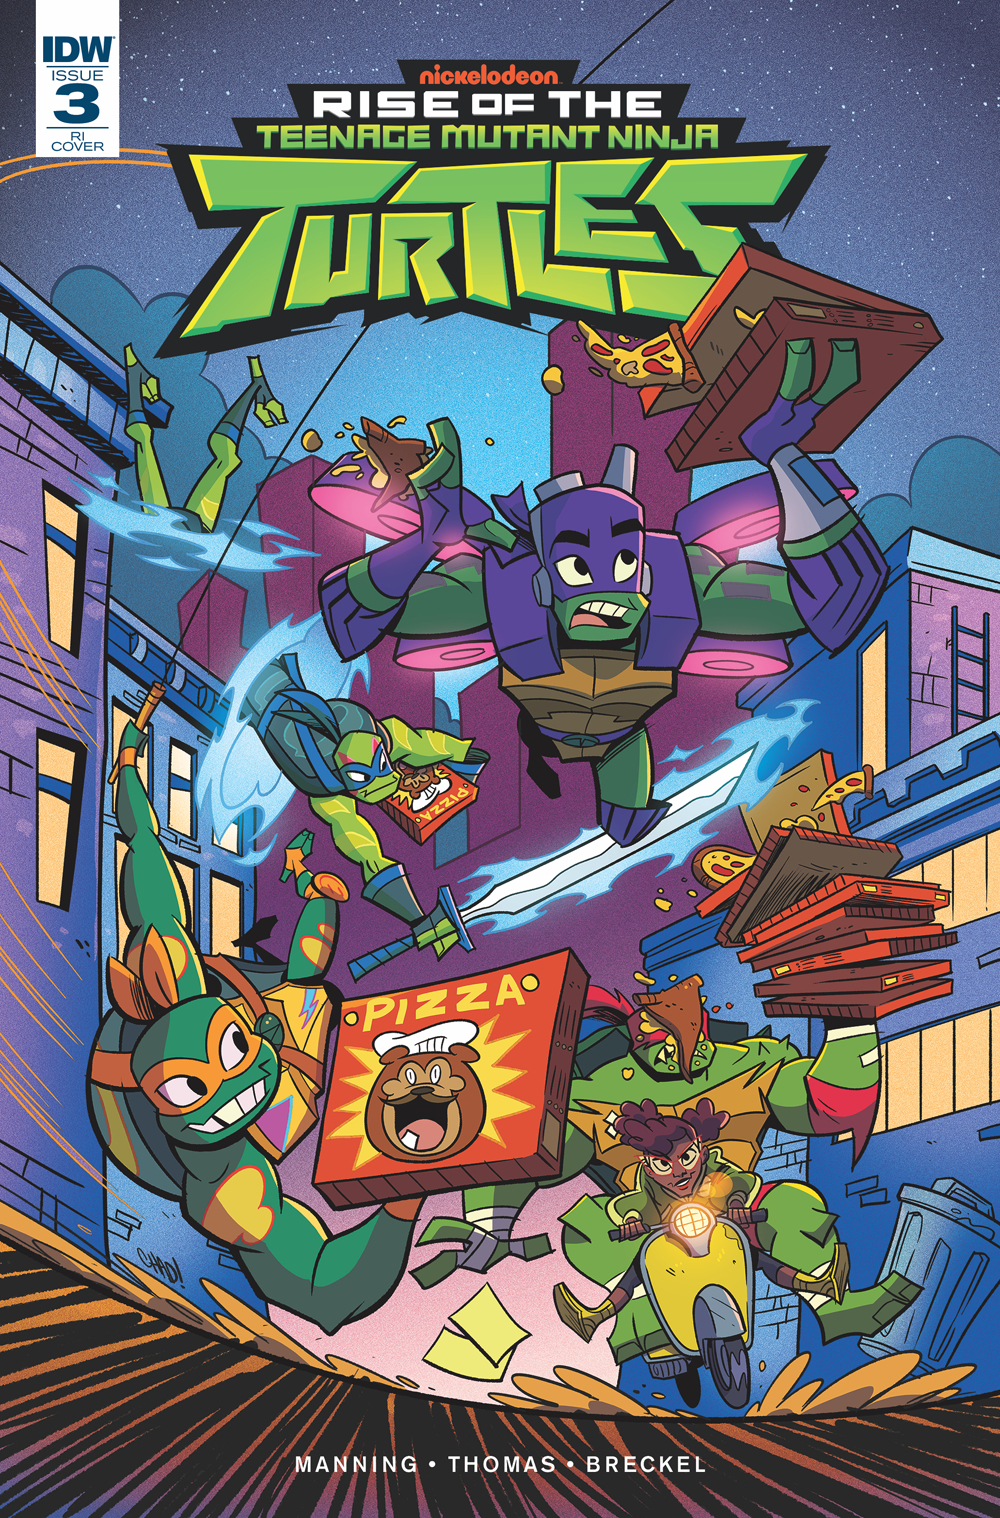 RISE OF THE TMNT #3 10 COPY INCV THOMAS